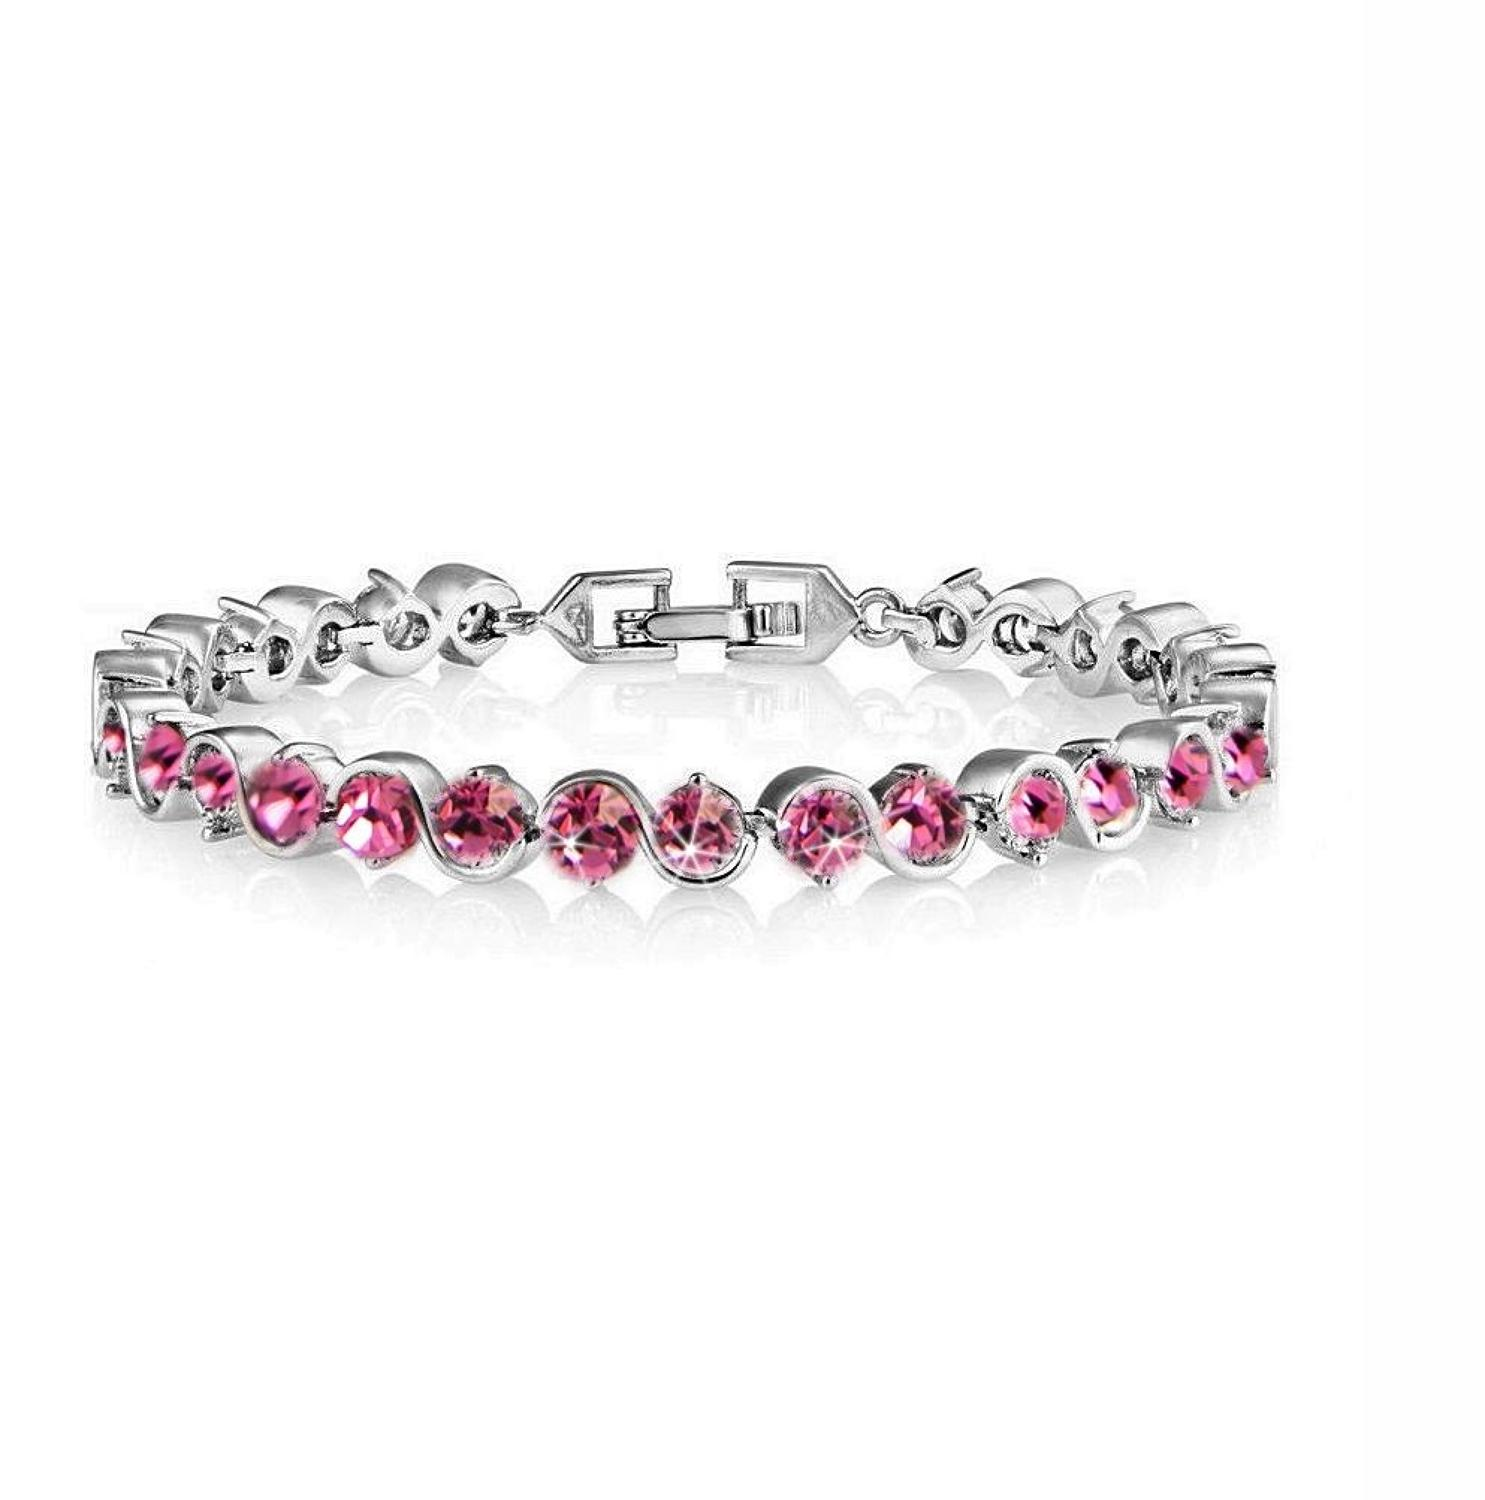 18ct White Gold Plated Pink Crystal Tennis Bracelet